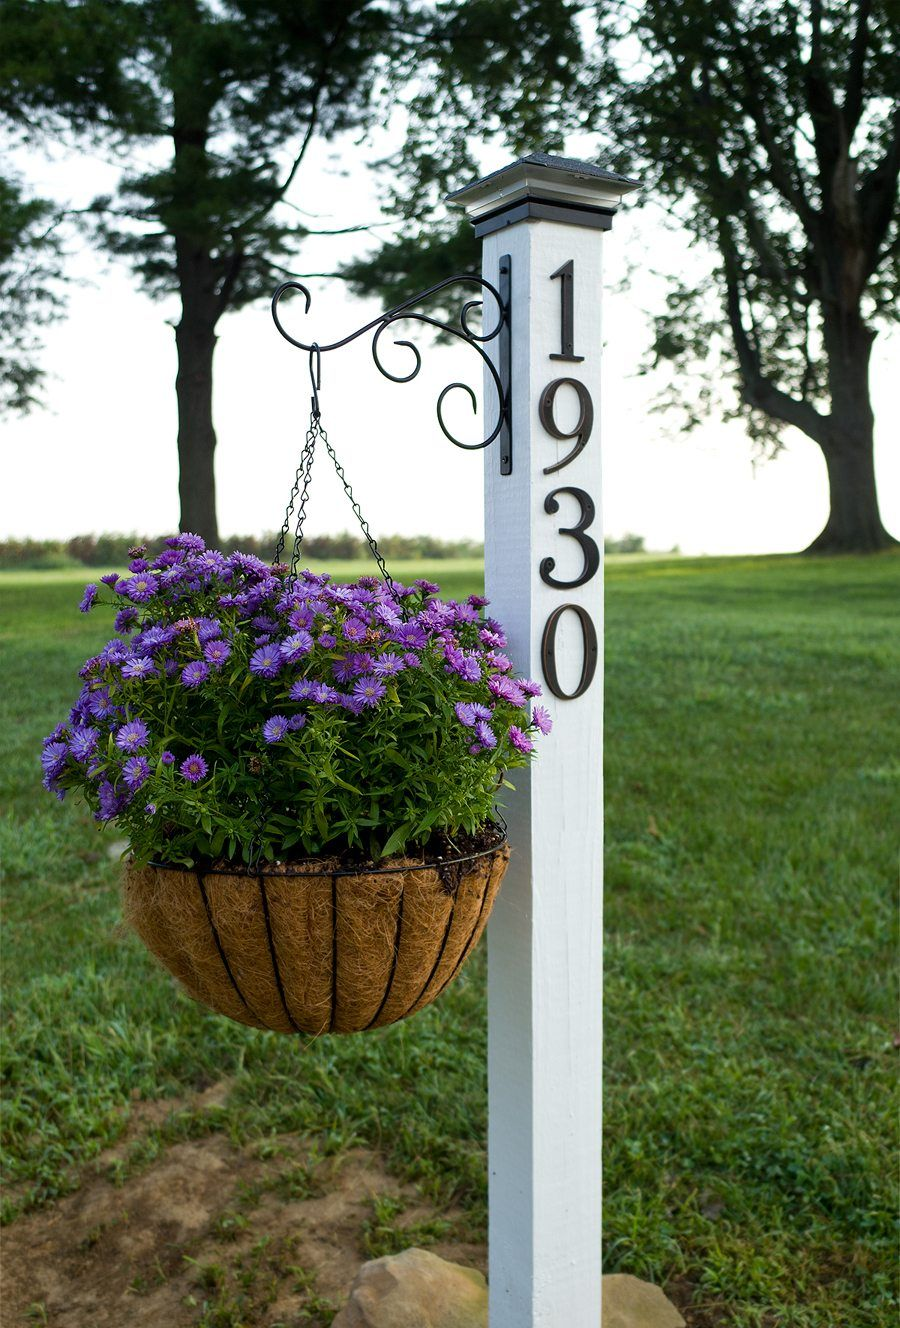 lowcost ways to instantly boost your homeus curb appeal in